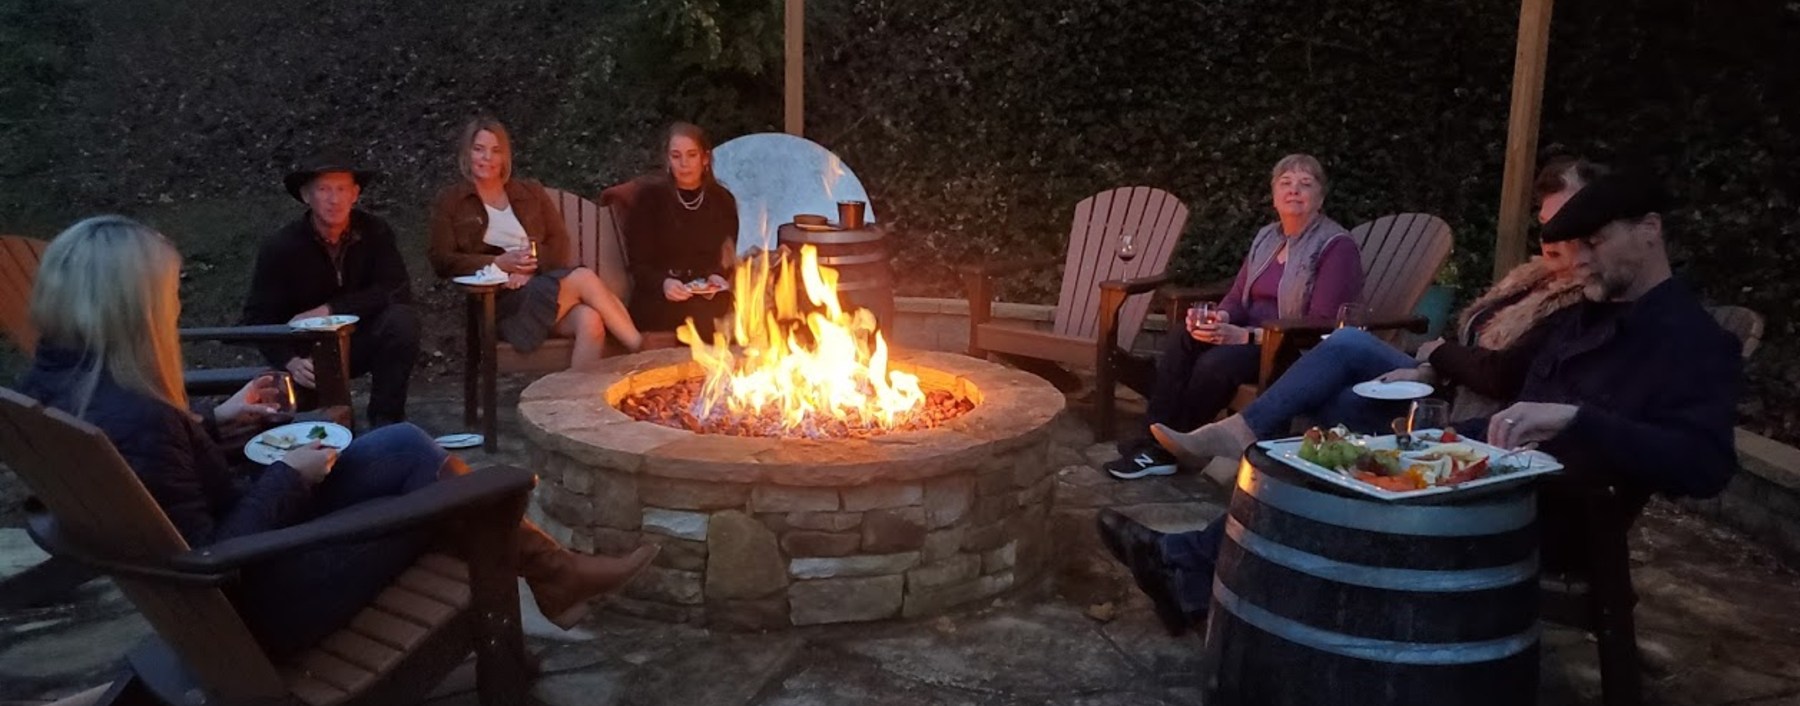 Image of Fire Pit and Guests at Beechwood Inn